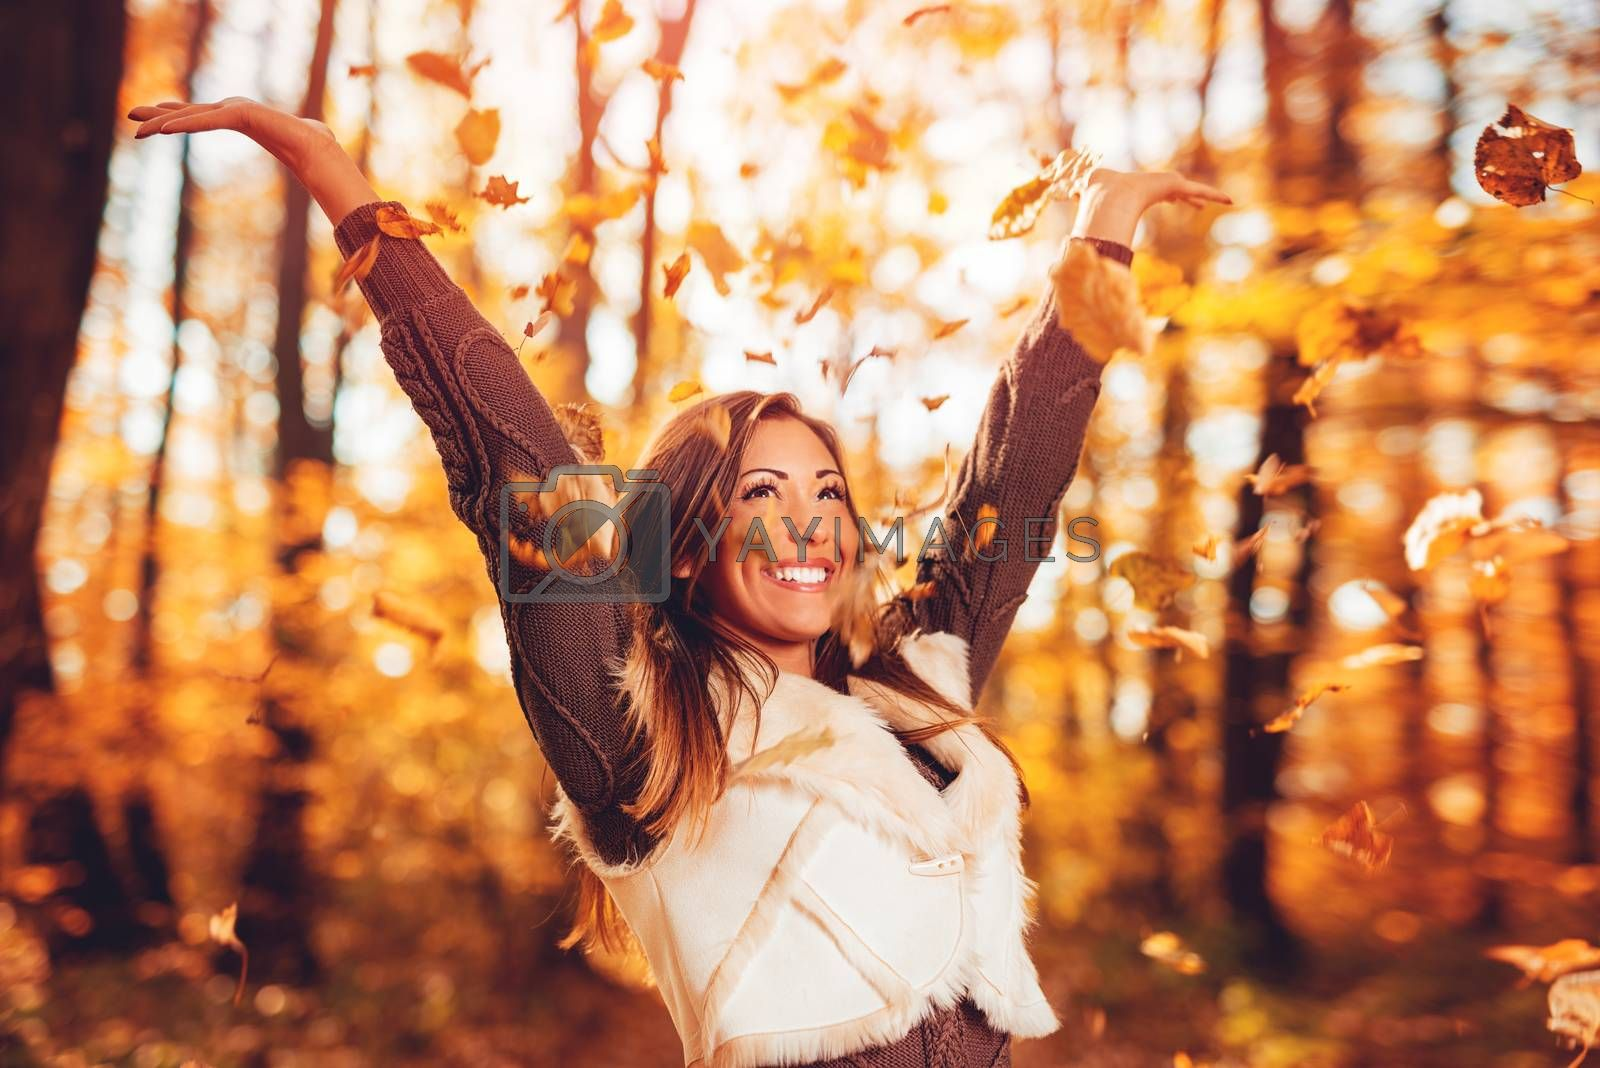 Cheerful young woman having fun in sunny forest in autumn colors.